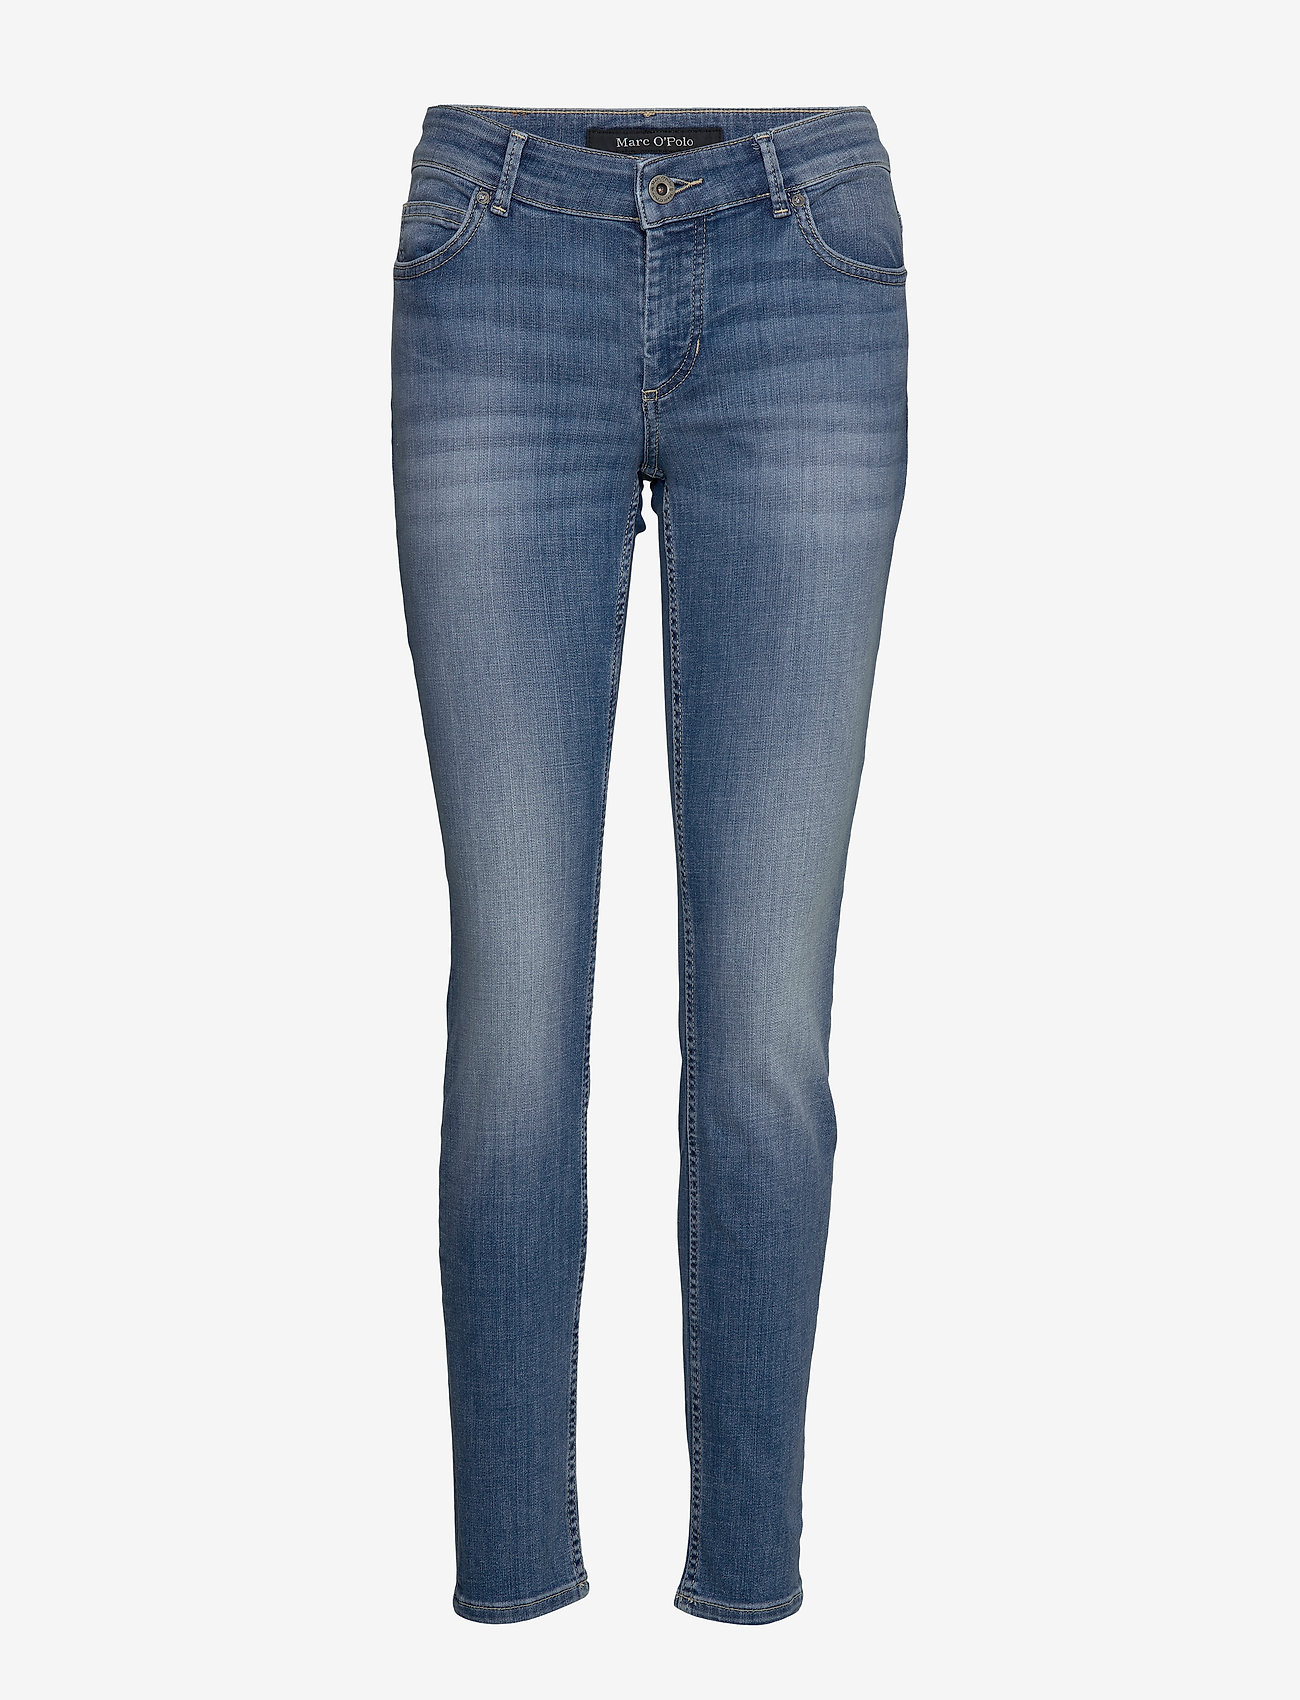 Marc O'Polo - DENIM TROUSERS - slim jeans - play with blue wash - 0